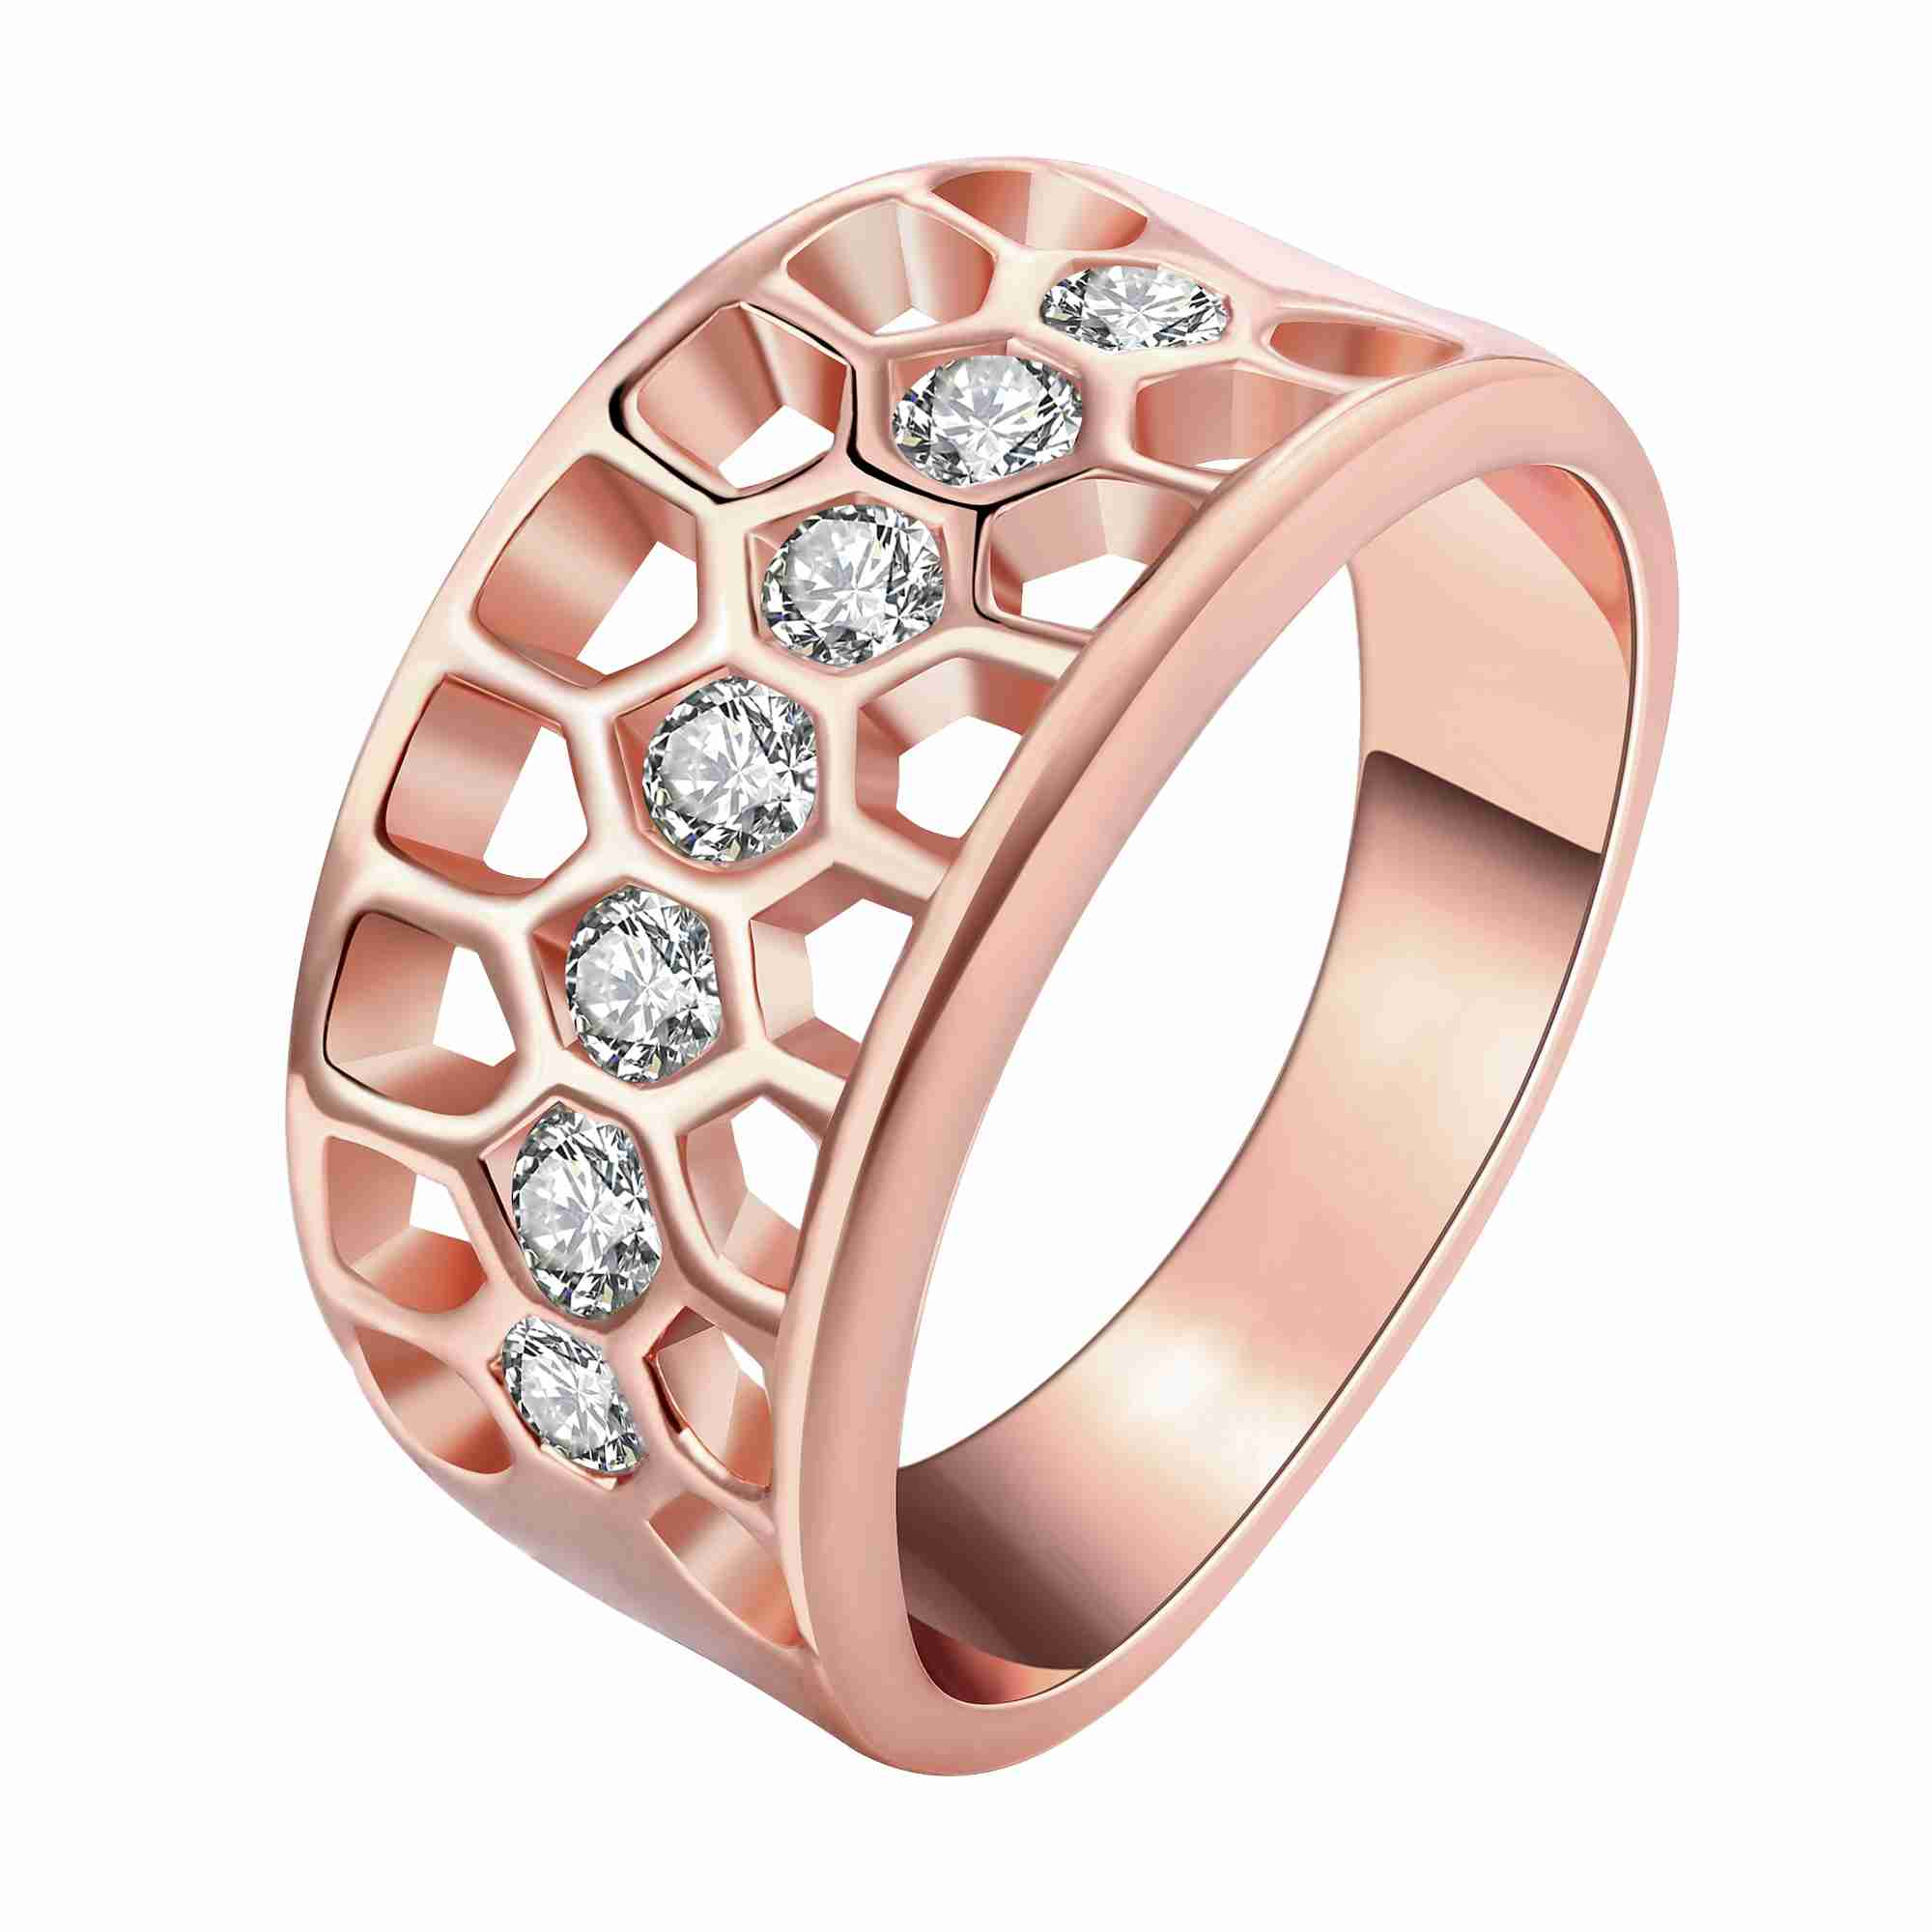 free shipping fashion new brand design luxurio gold color wedding rings hollow rhinestone circle ring men prices in euros